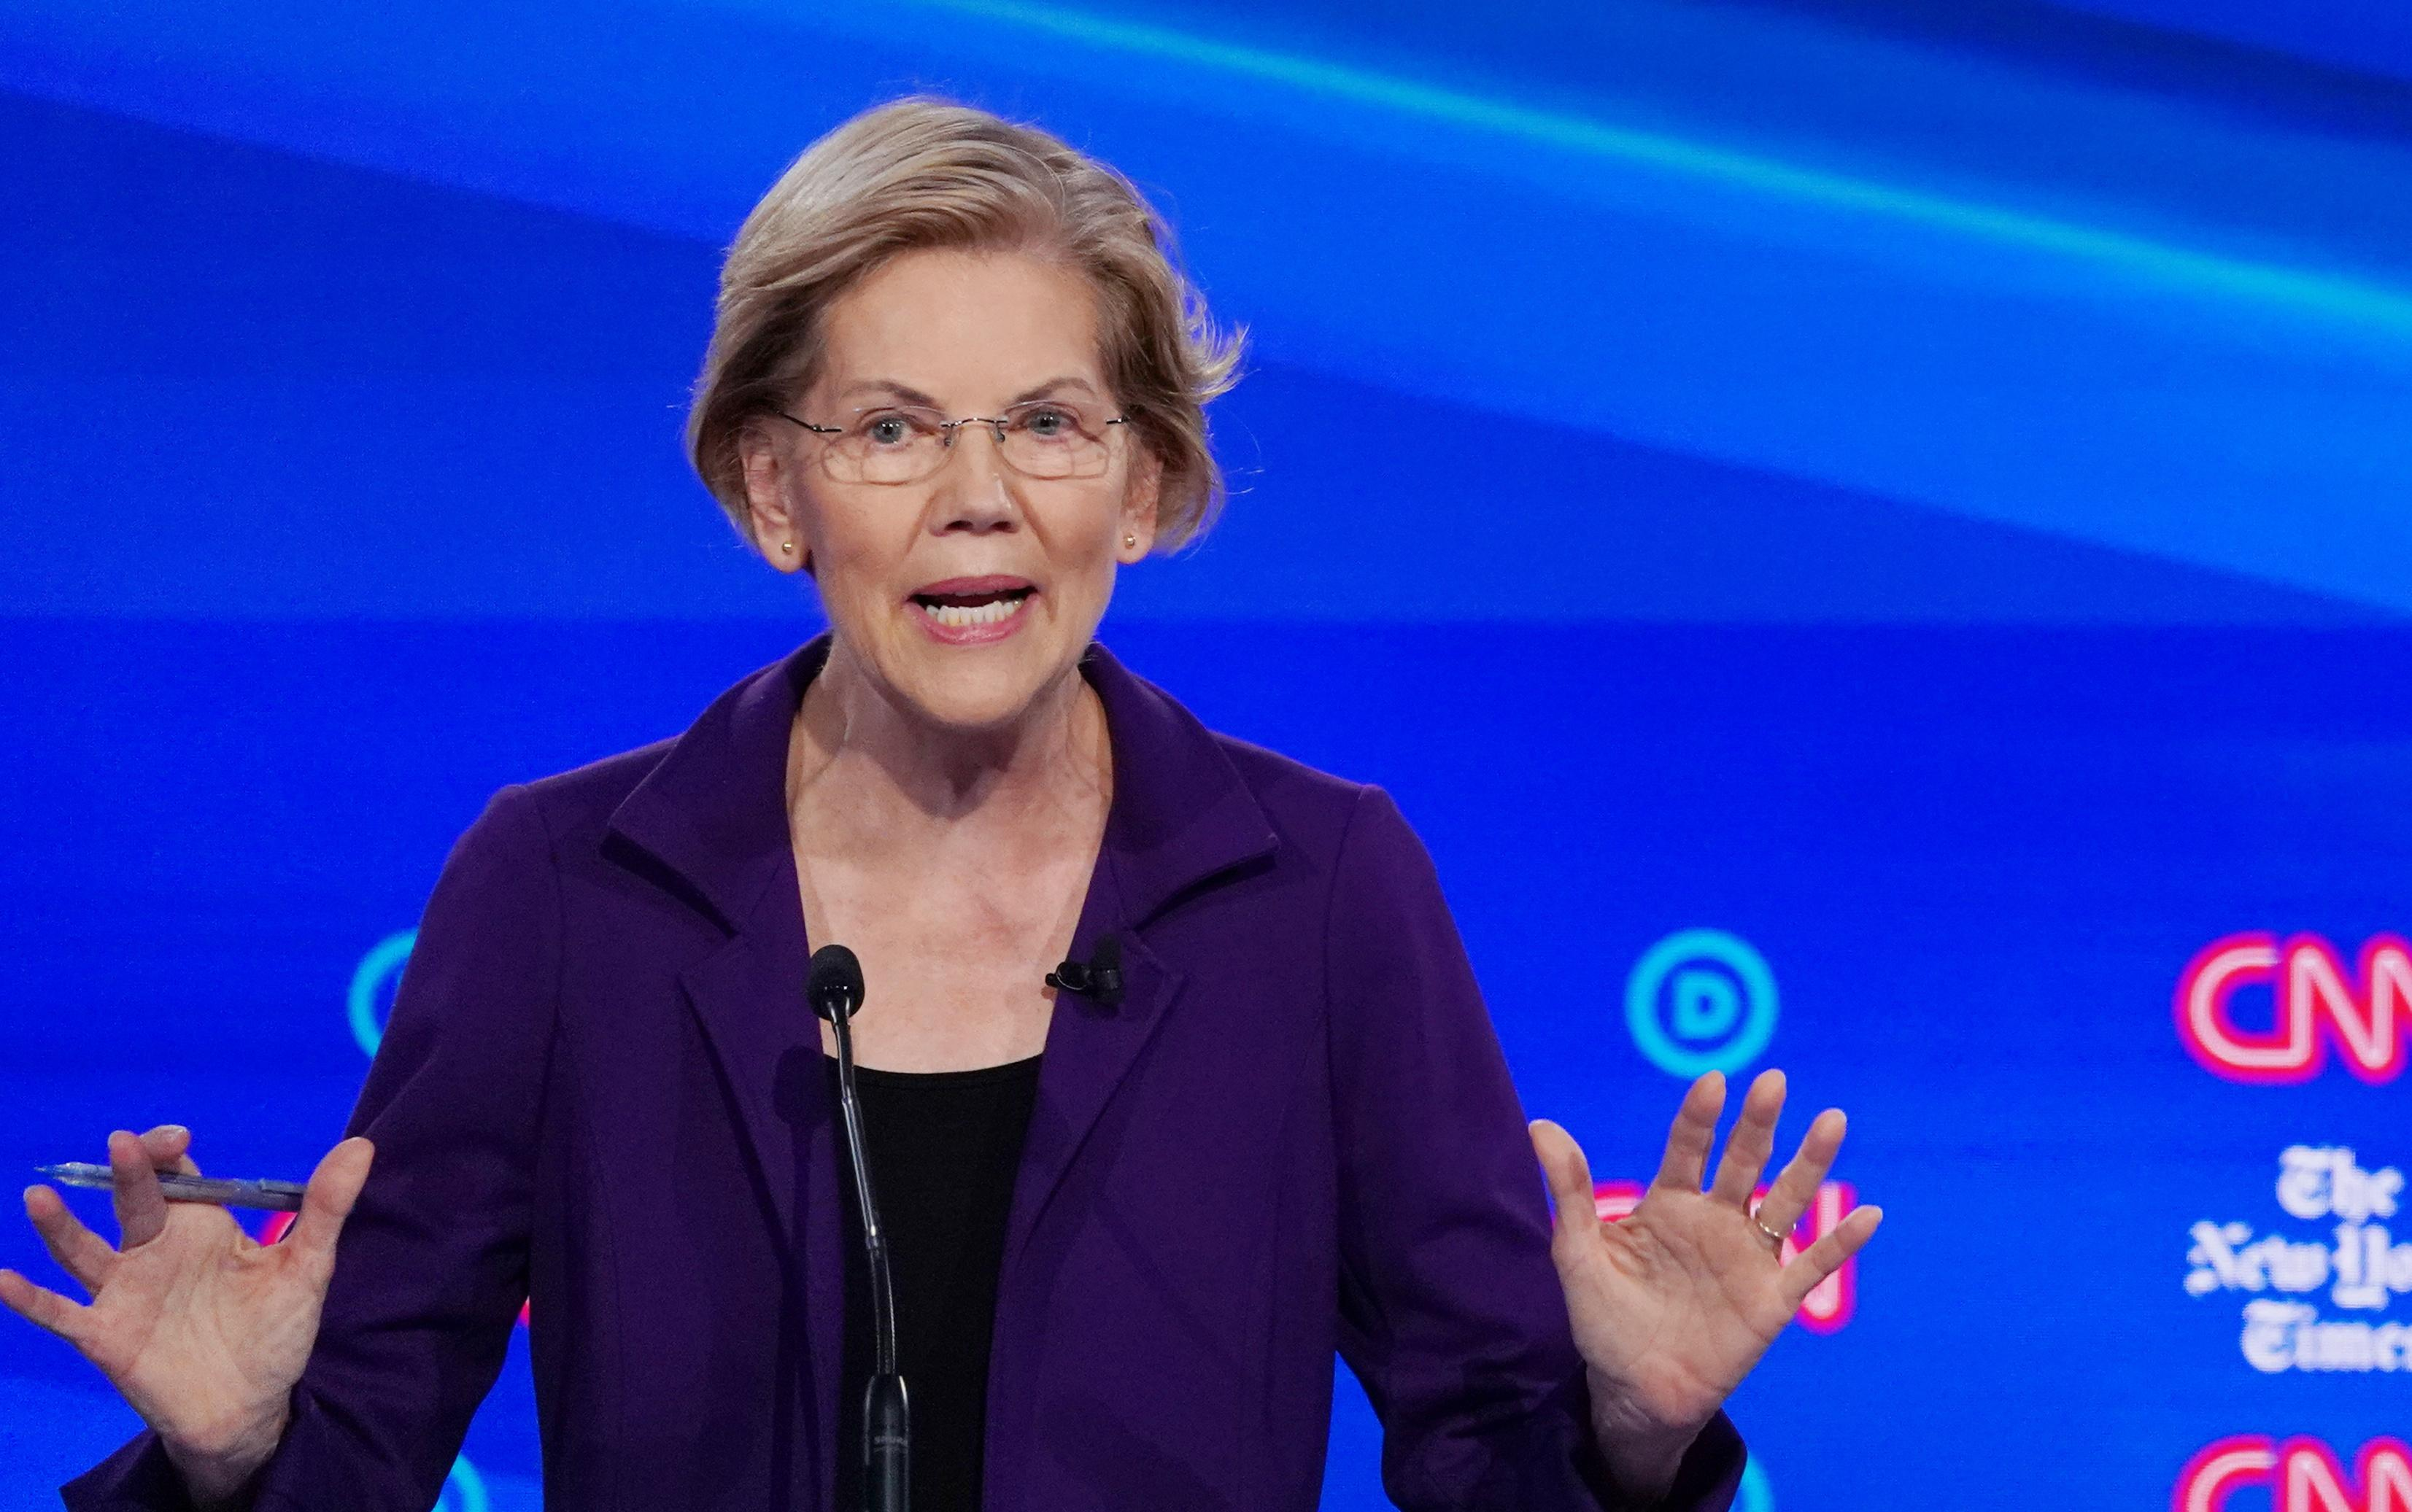 Warren comes under attack on healthcare, taxes at U.S. Democratic...